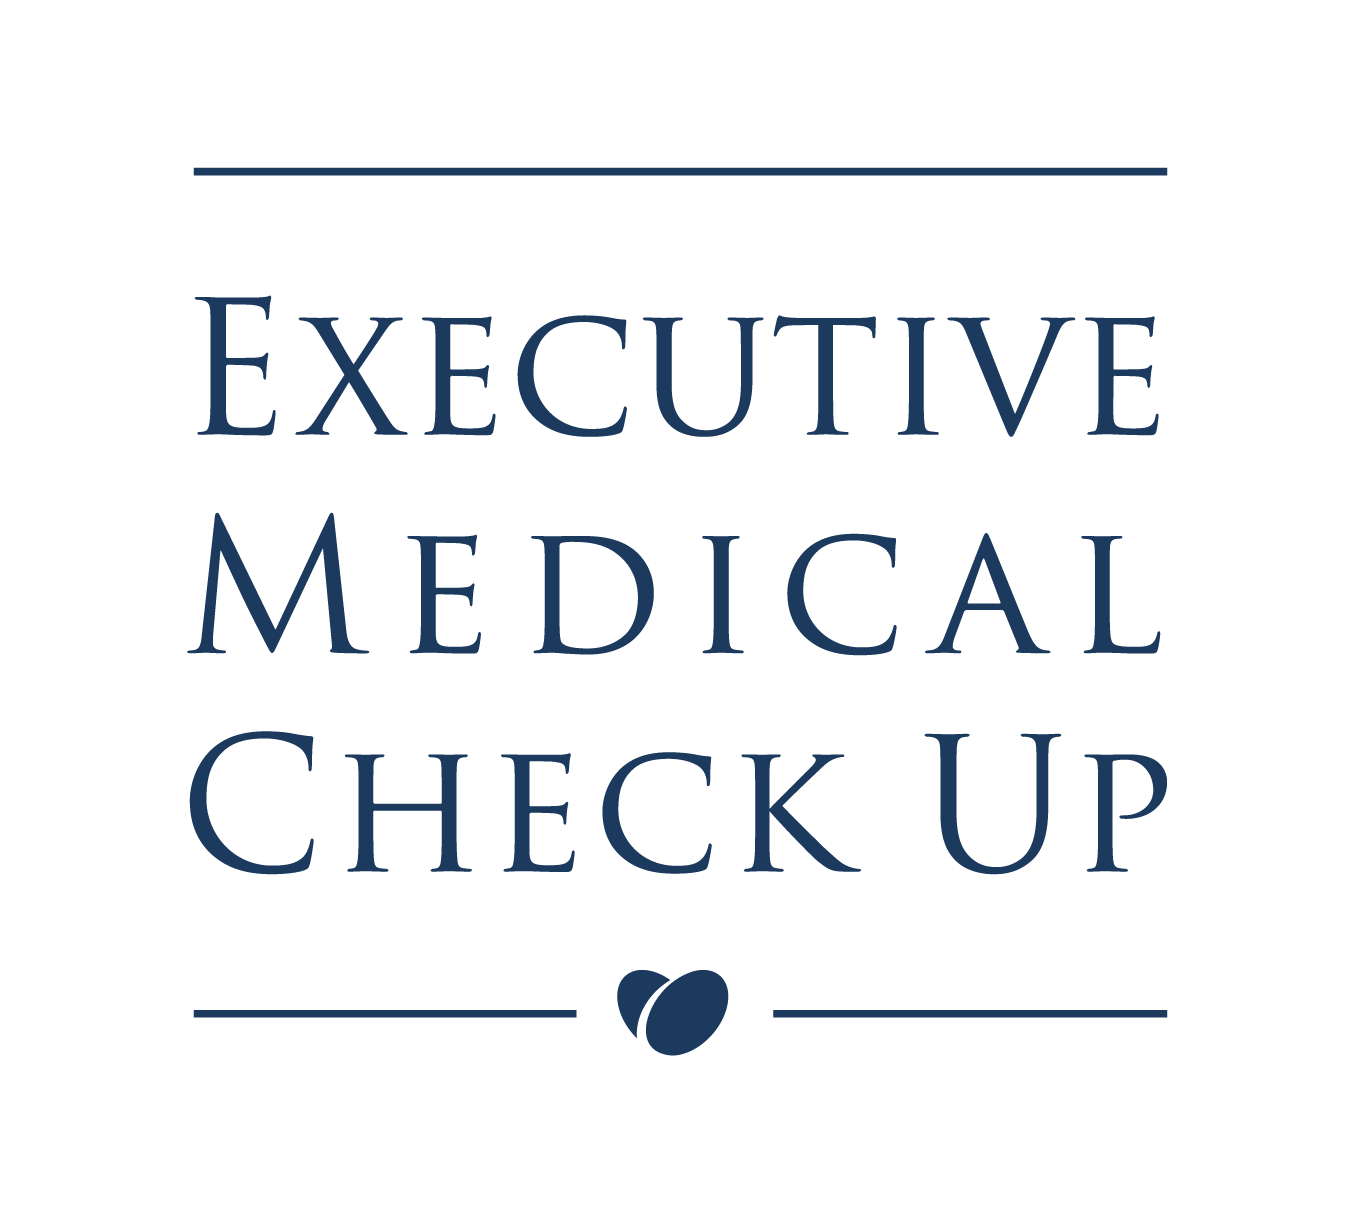 Executive Medical Check Up